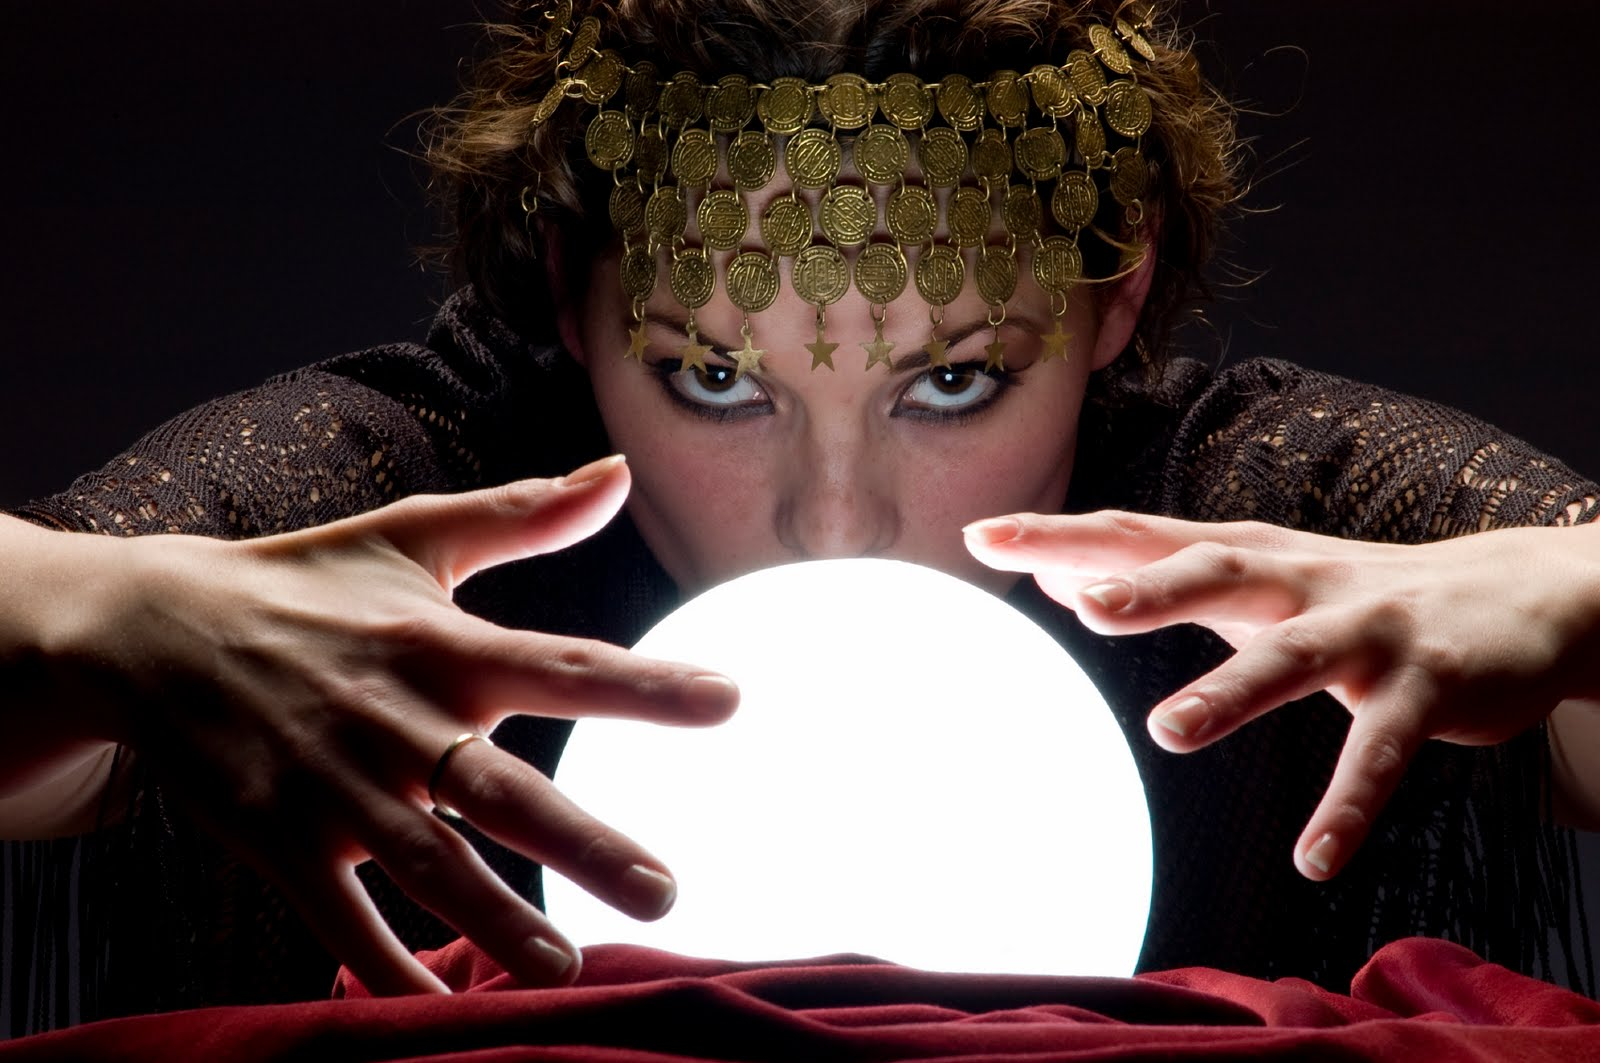 science can't explain the Psychic powers and extra sensory perception